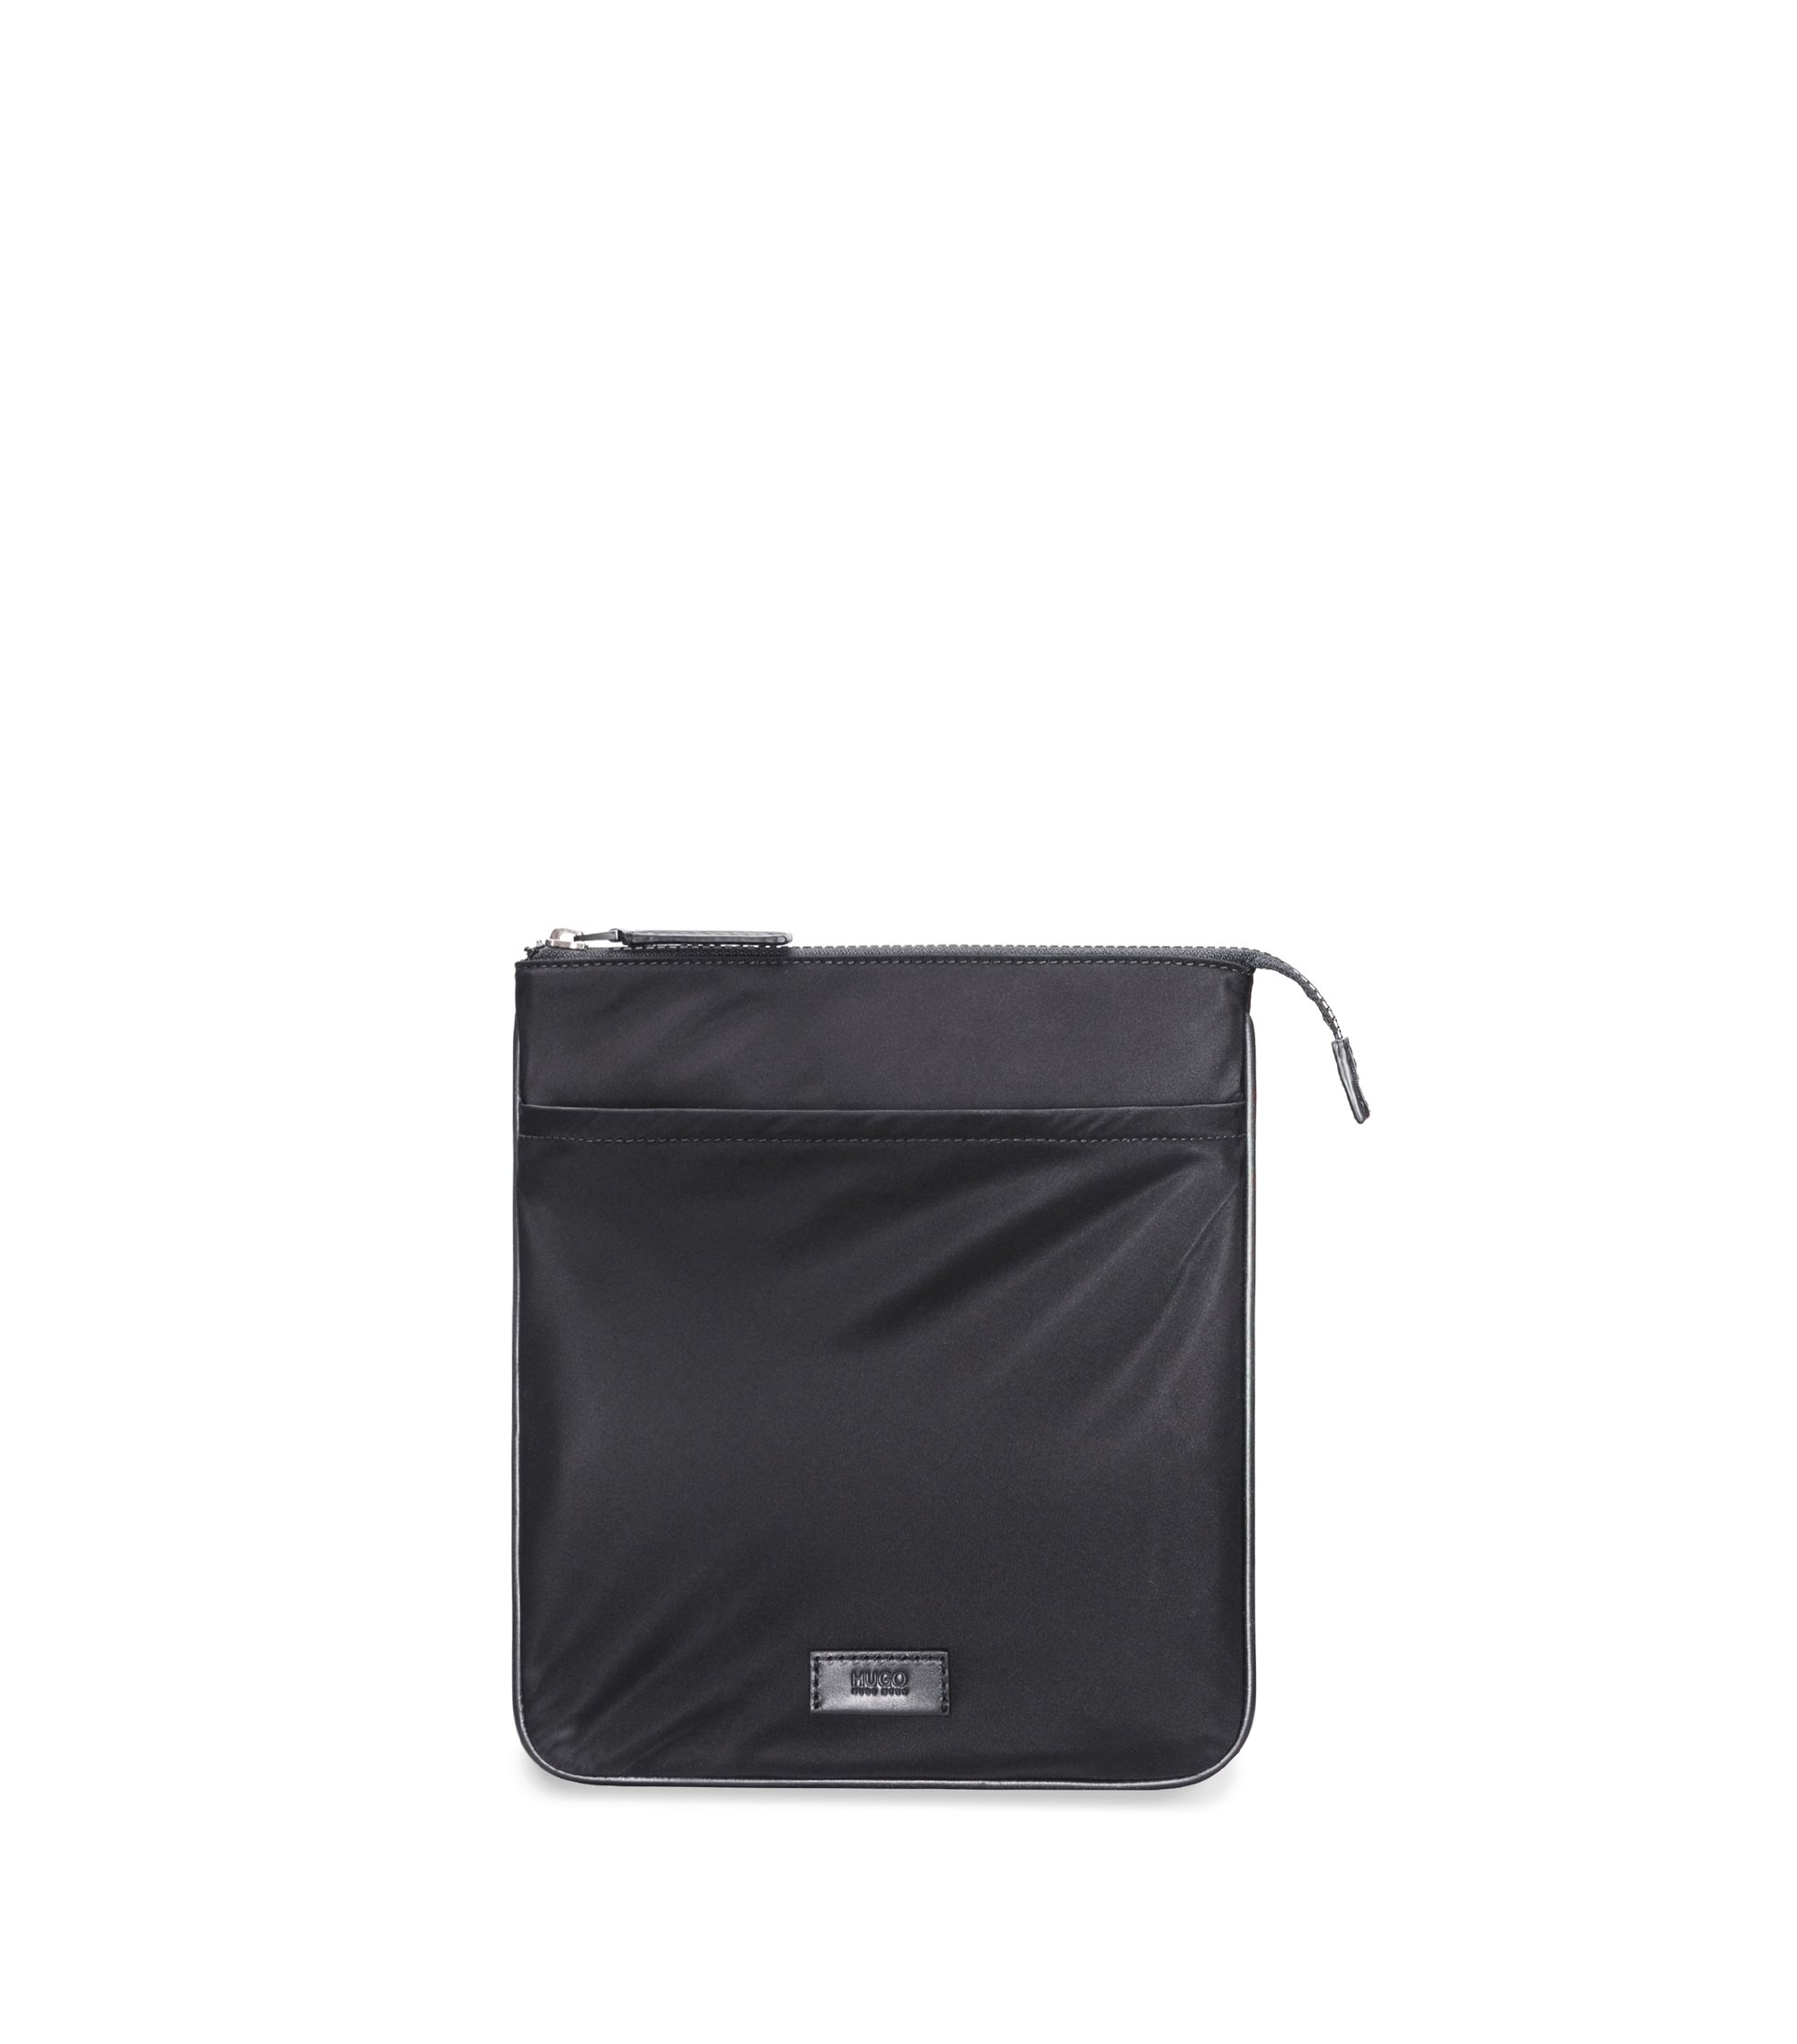 Envelope bag in gabardine nylon with leather trims, Black